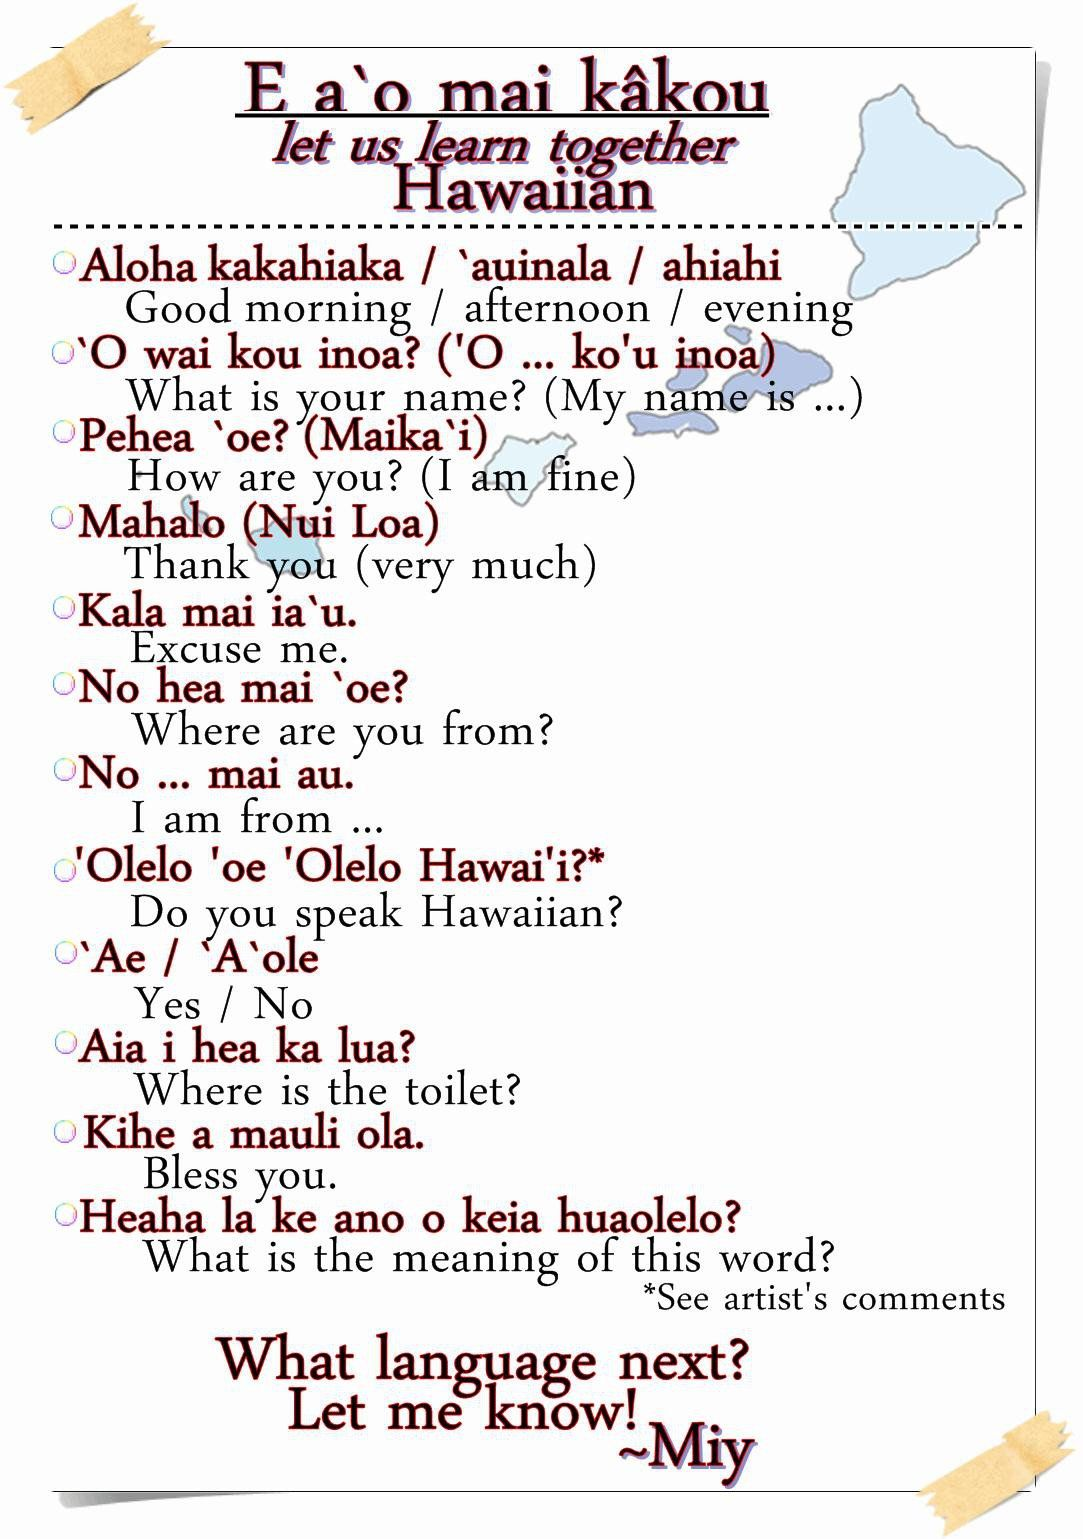 hawaiian phrases | Basic Hawaiian Phrases by MiyakoRei on ...